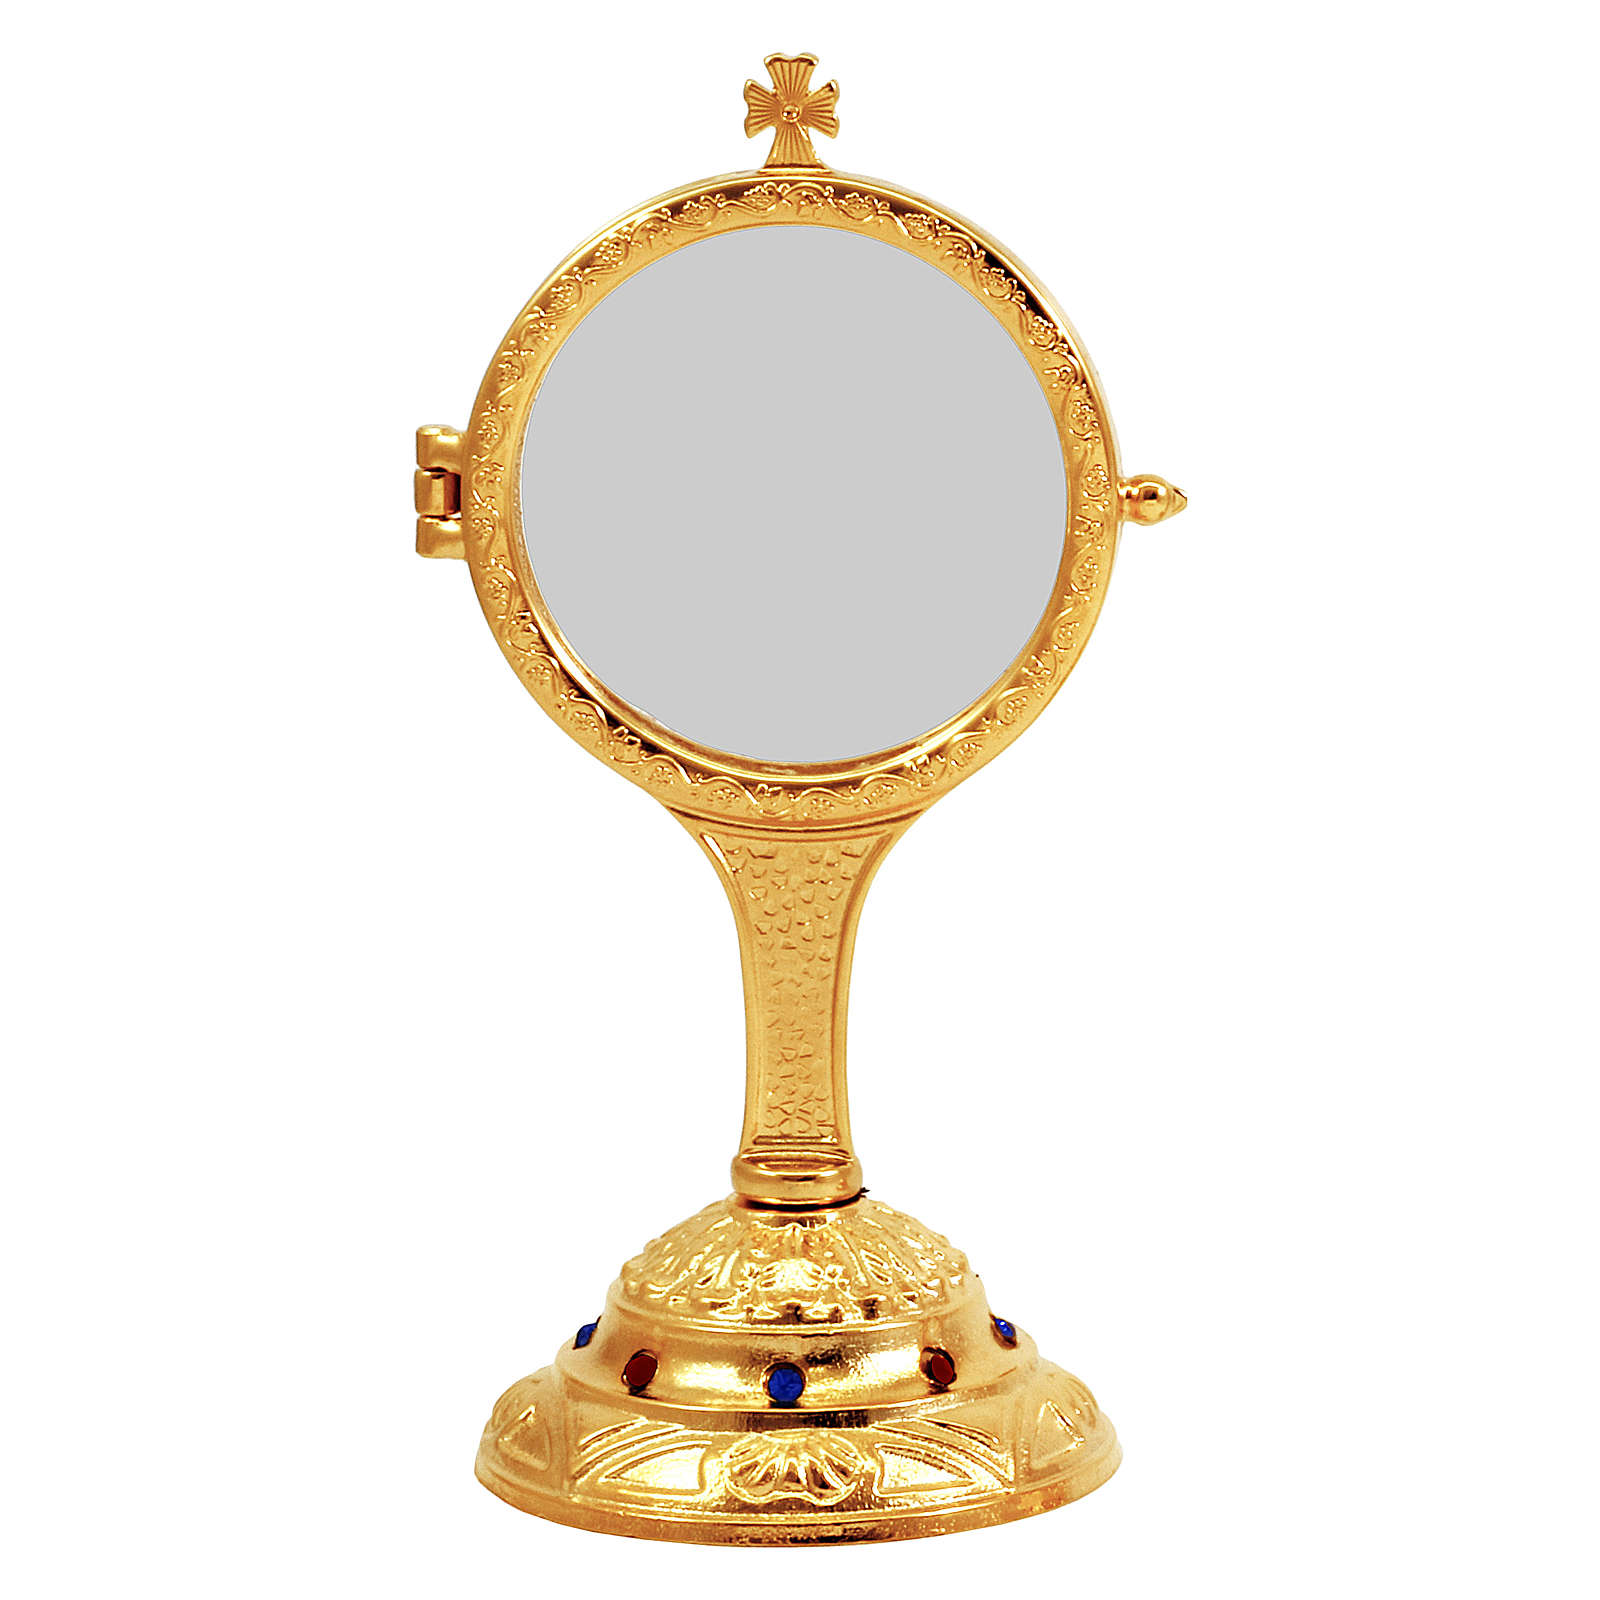 Golden monstrance with decorative stones on the base, h. 18 cm 4